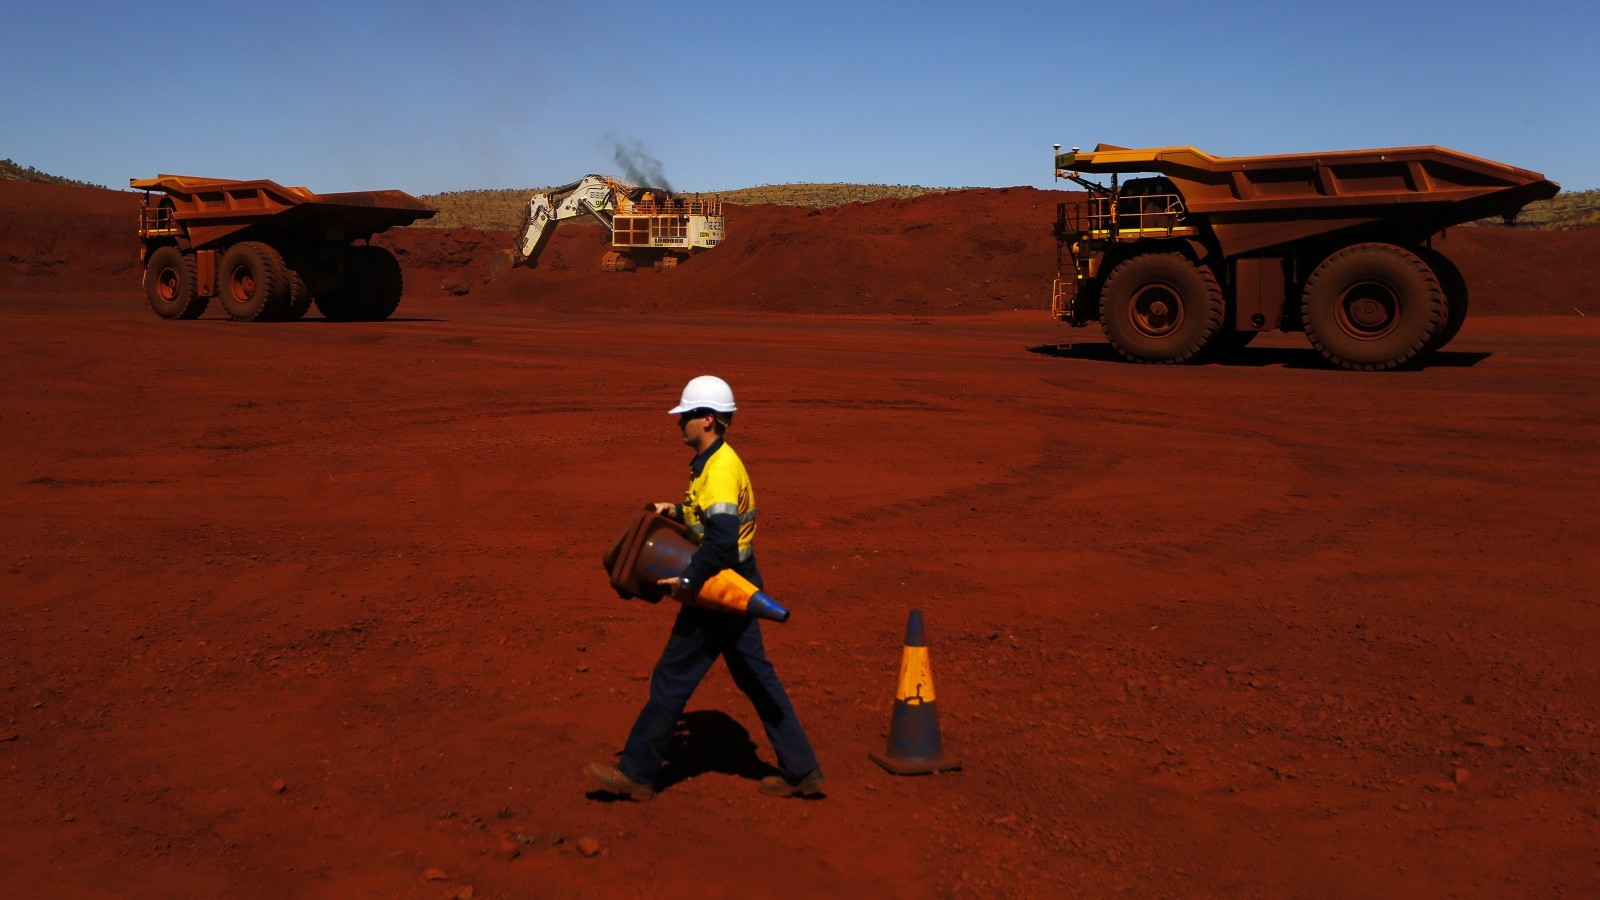 A mine worker lays out safety cones in front of giant mining trucks at the Fortescue Solomon iron ore mine located in the Sheila Valley, around 400 km (249 miles) south of Port Hedland, in the Pilbara region of Western Australia December 2, 2013. Miner Fortescue Metals Group Ltd, which holds some of the world's biggest reserves of iron ore, will call a temporary end to growth next year until it pays off billions of dollars in debt used to fund massive expansion work. To match Interview AUSTRALIA-FORTESCUE/ REUTERS/David Gray (AUSTRALIA - Tags: BUSINESS COMMODITIES) - RTX161CB